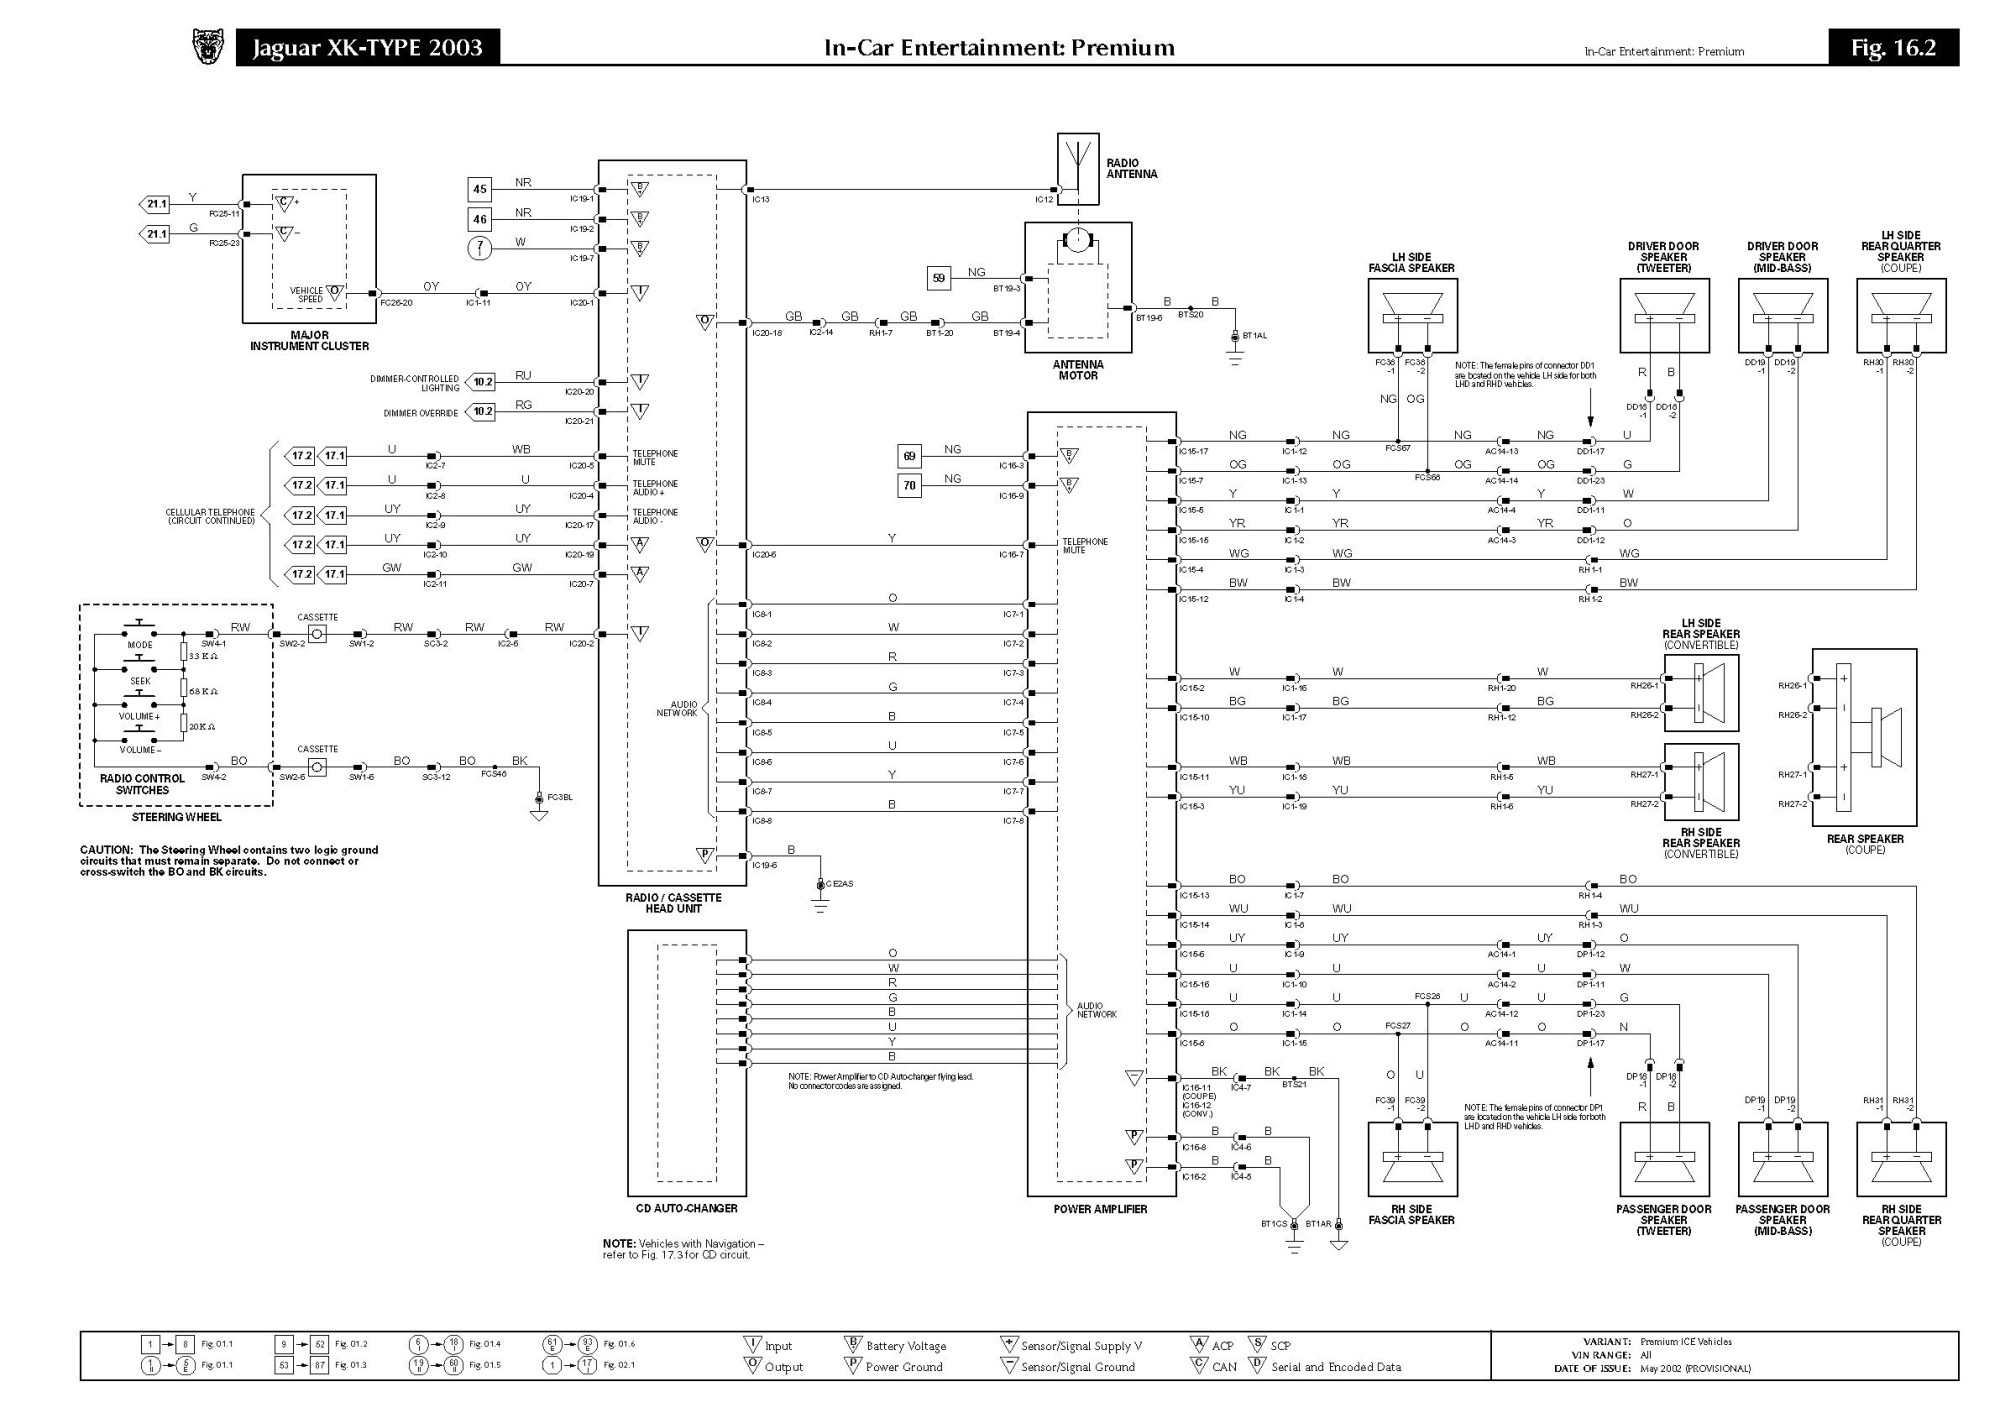 hight resolution of wiring diagram 2000 xj8 wiring diagram technic wiring diagrams 1998 jaguar xj8